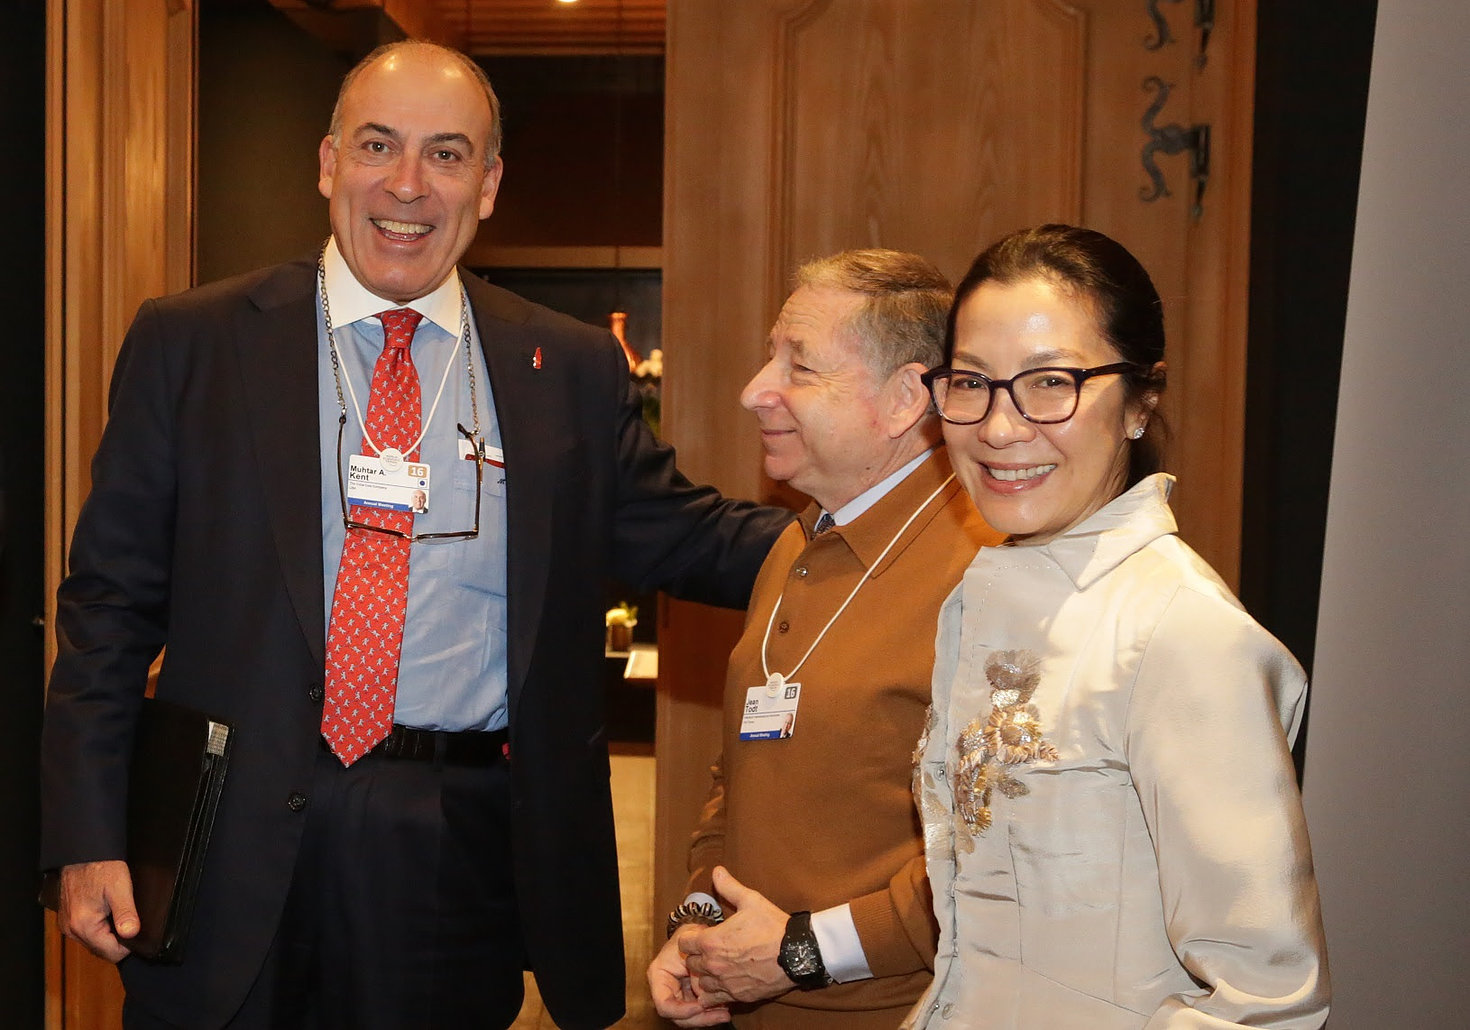 Muhtar Kent, CEO of The Coca-Cola Company with Jean Todt, President of the FIA and Michelle Yeoh, Actress and Global Road Safety Ambassador